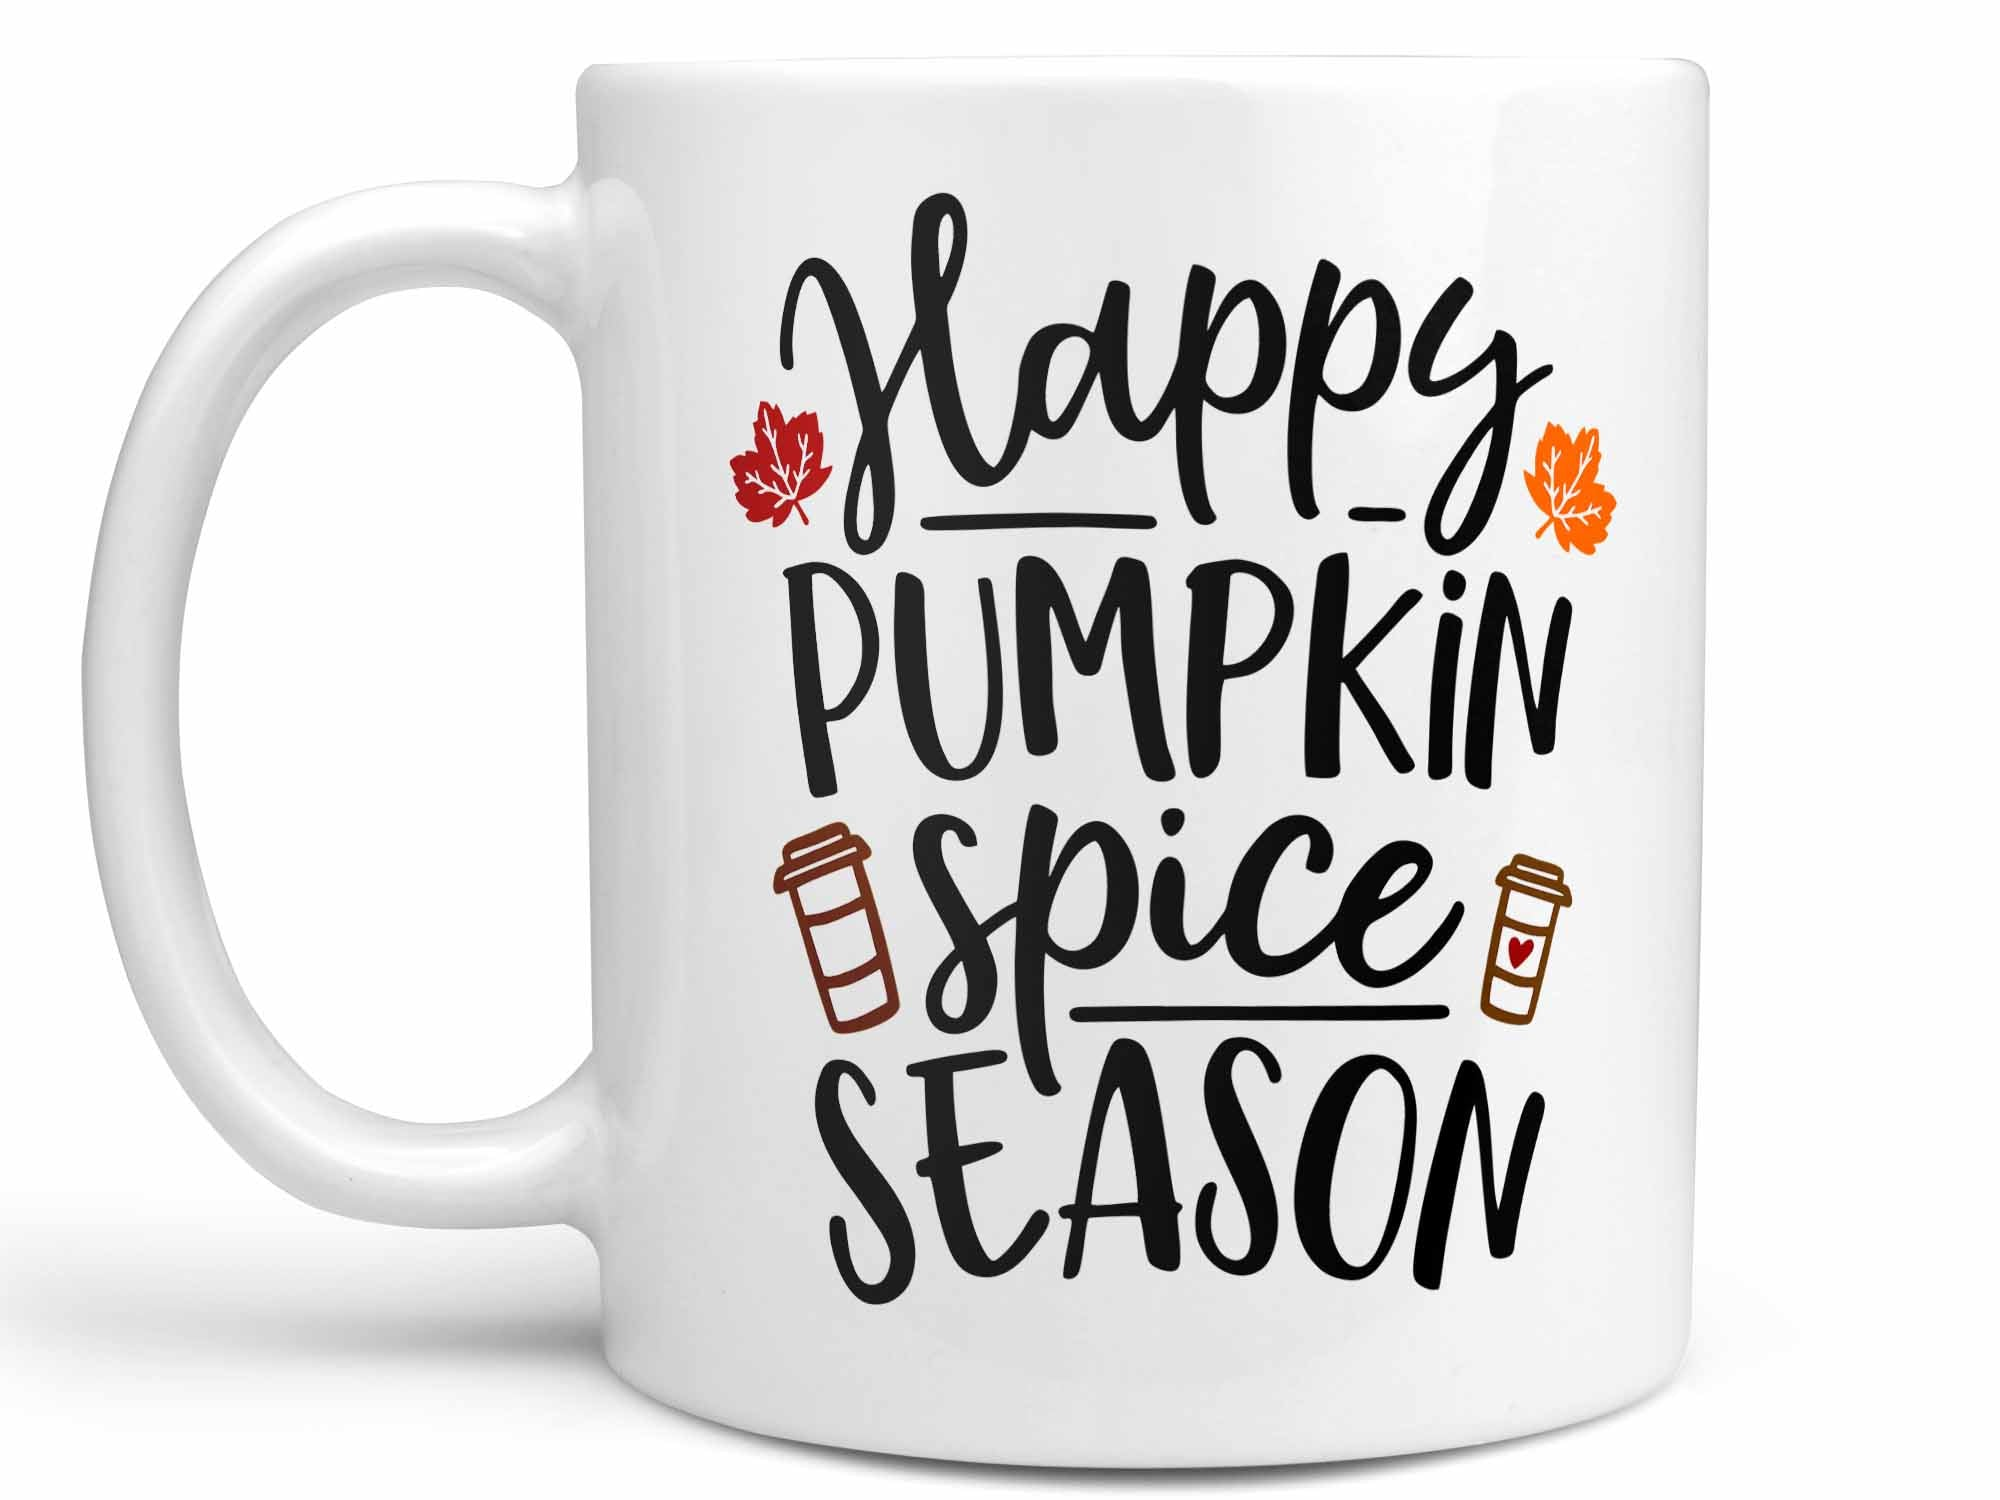 Pumpkin Spice Season Coffee Mug